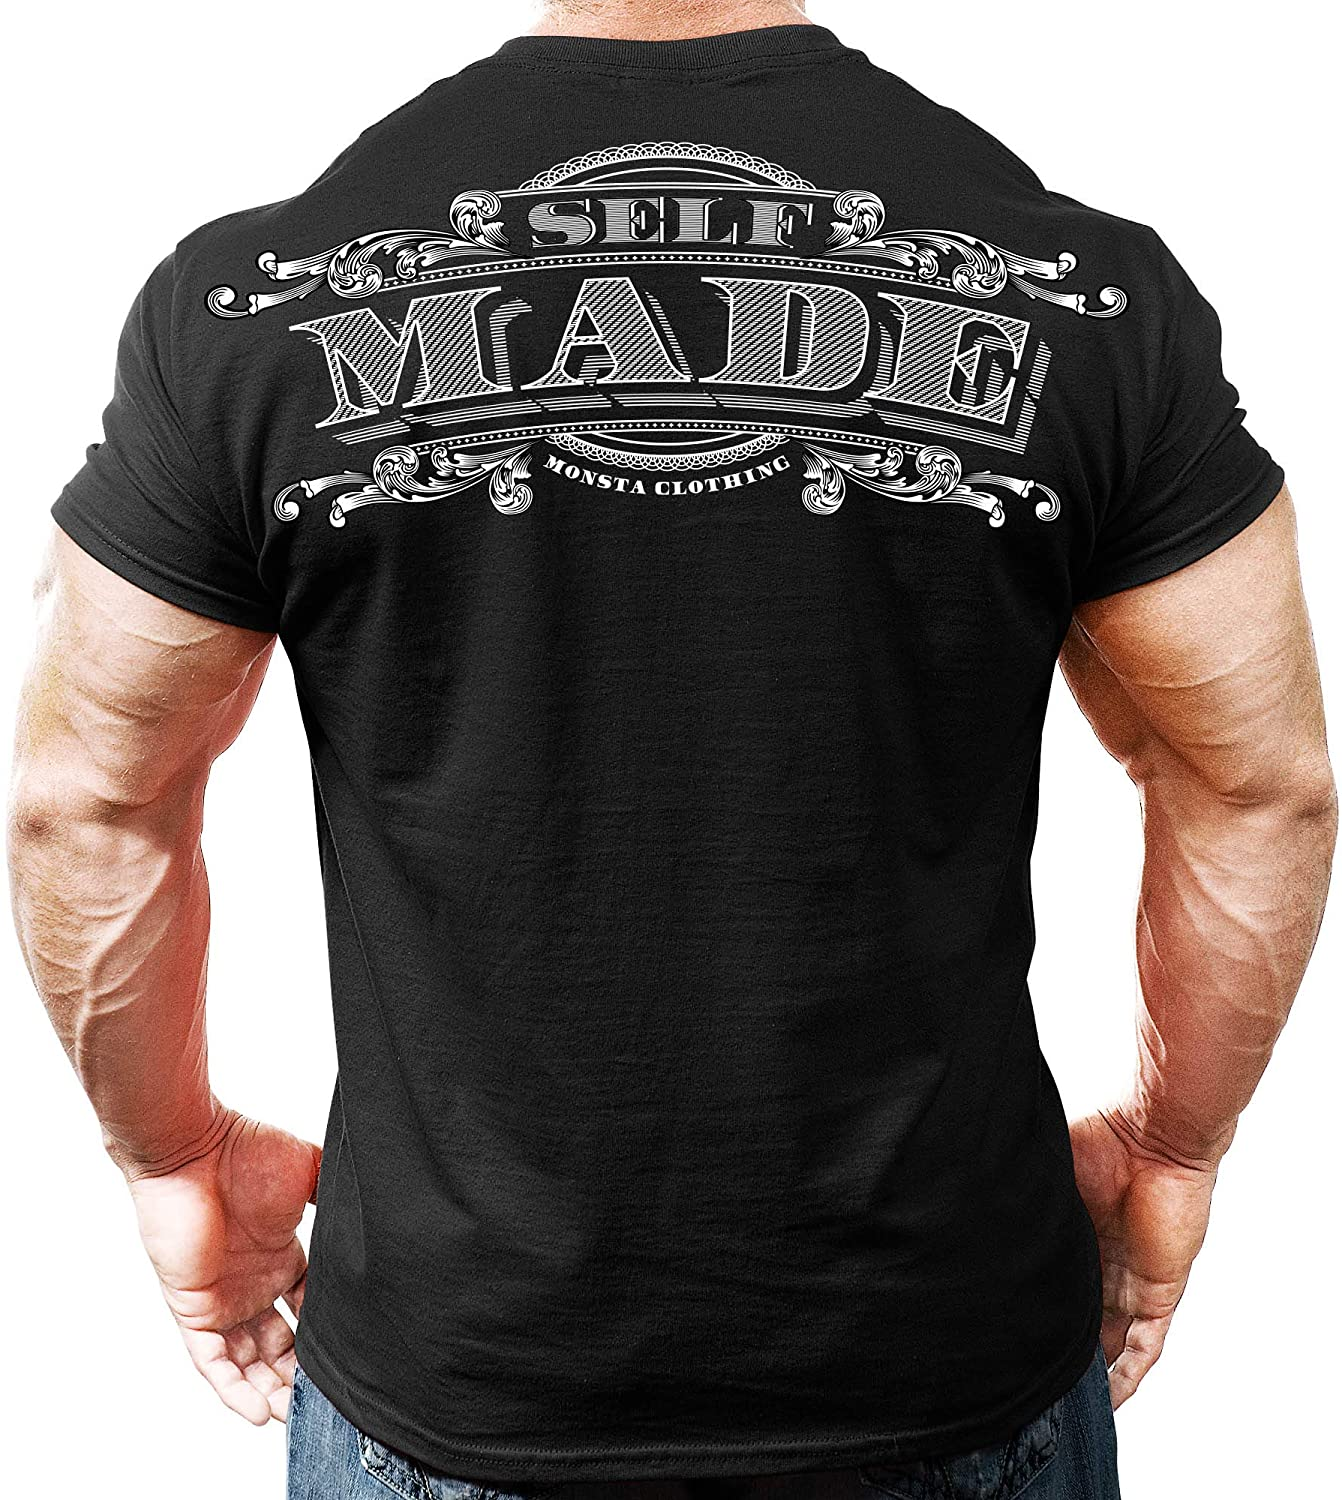 Monsta Clothing Co. Men's Bodybuilding Workout (Self Made) Athletic Gym T-Shirt